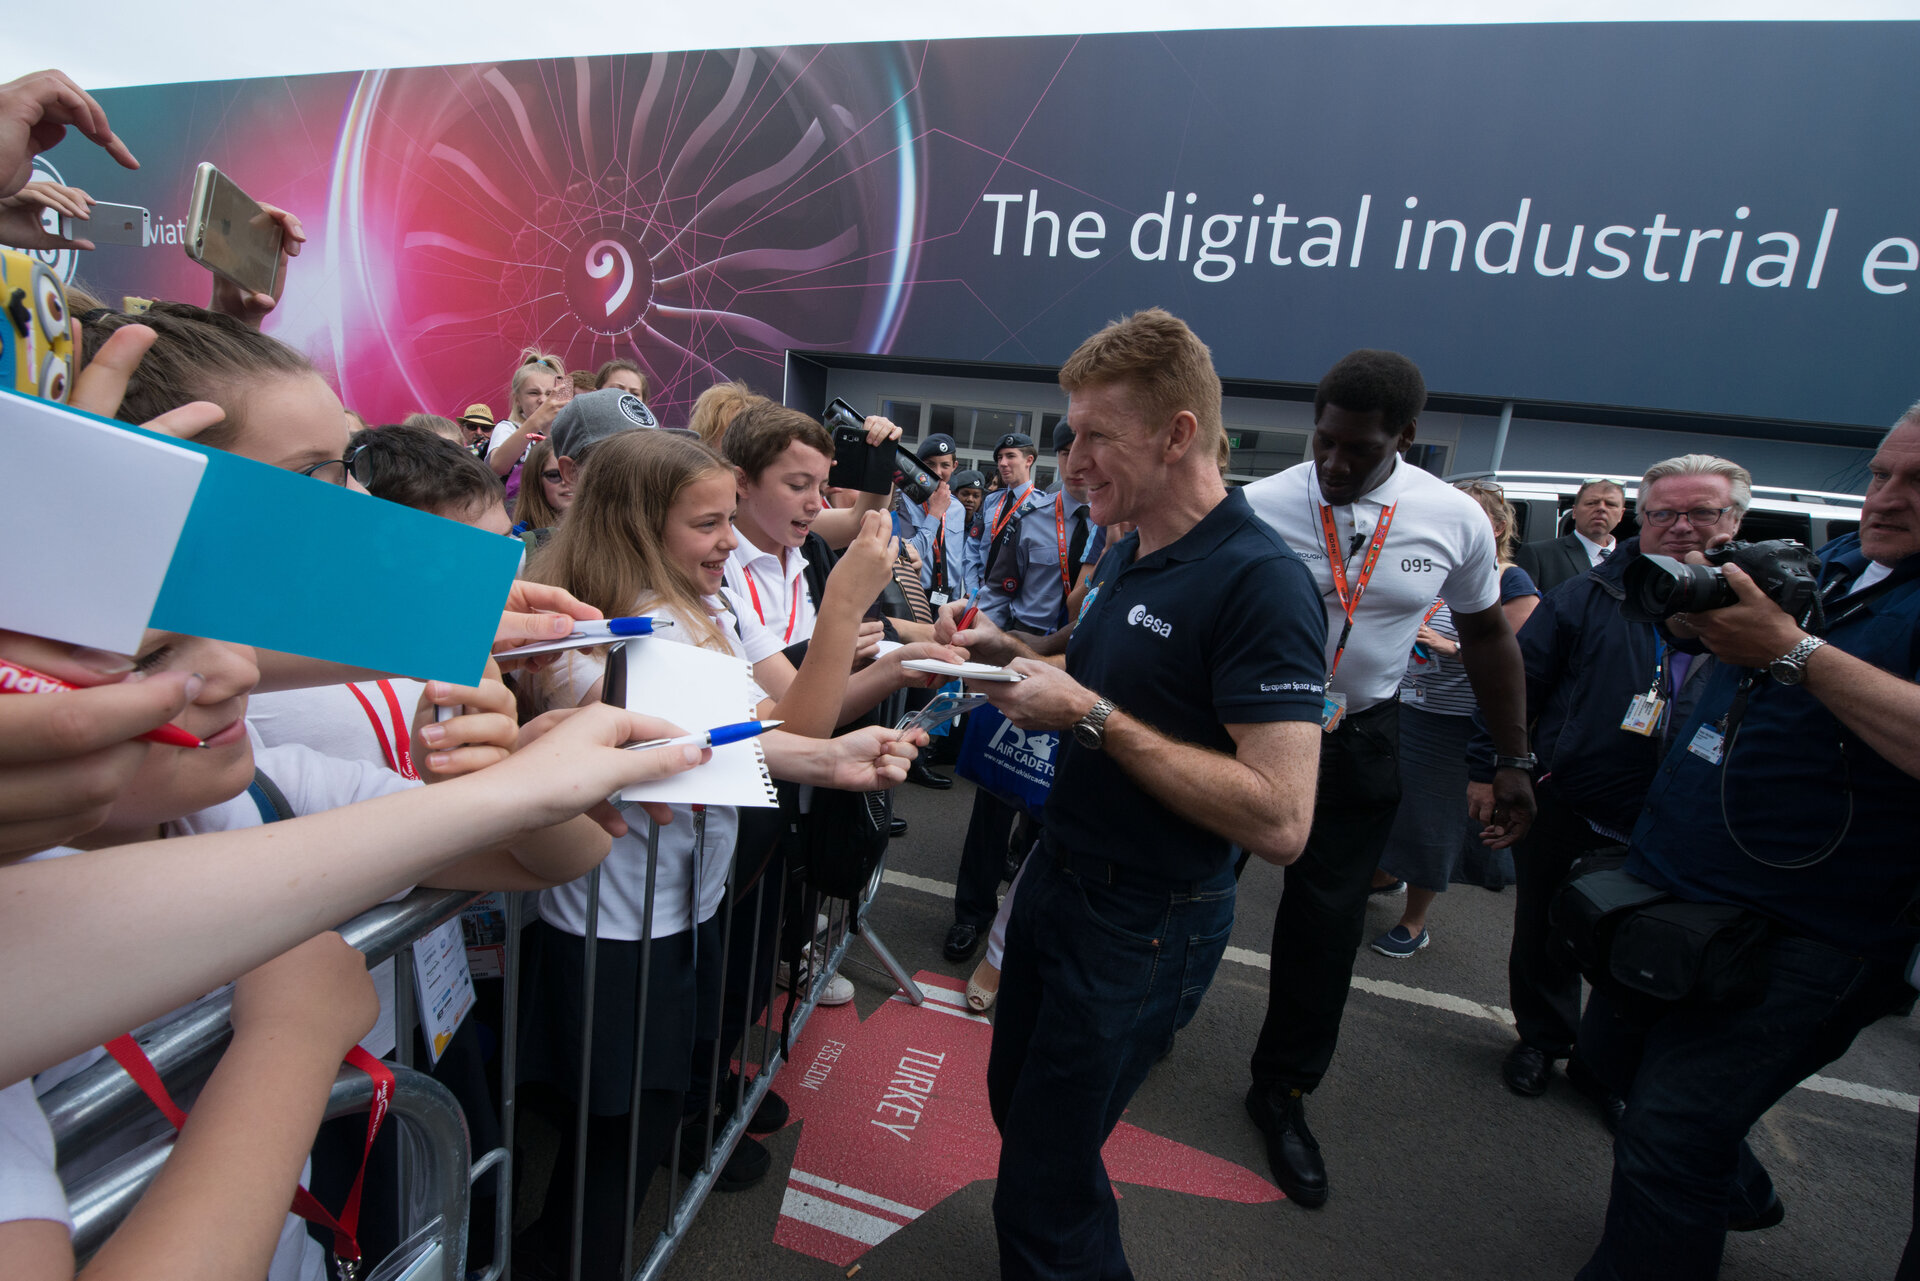 ESA astronaut Tim Peake signing autographs, at Farnborough Airshow 2016